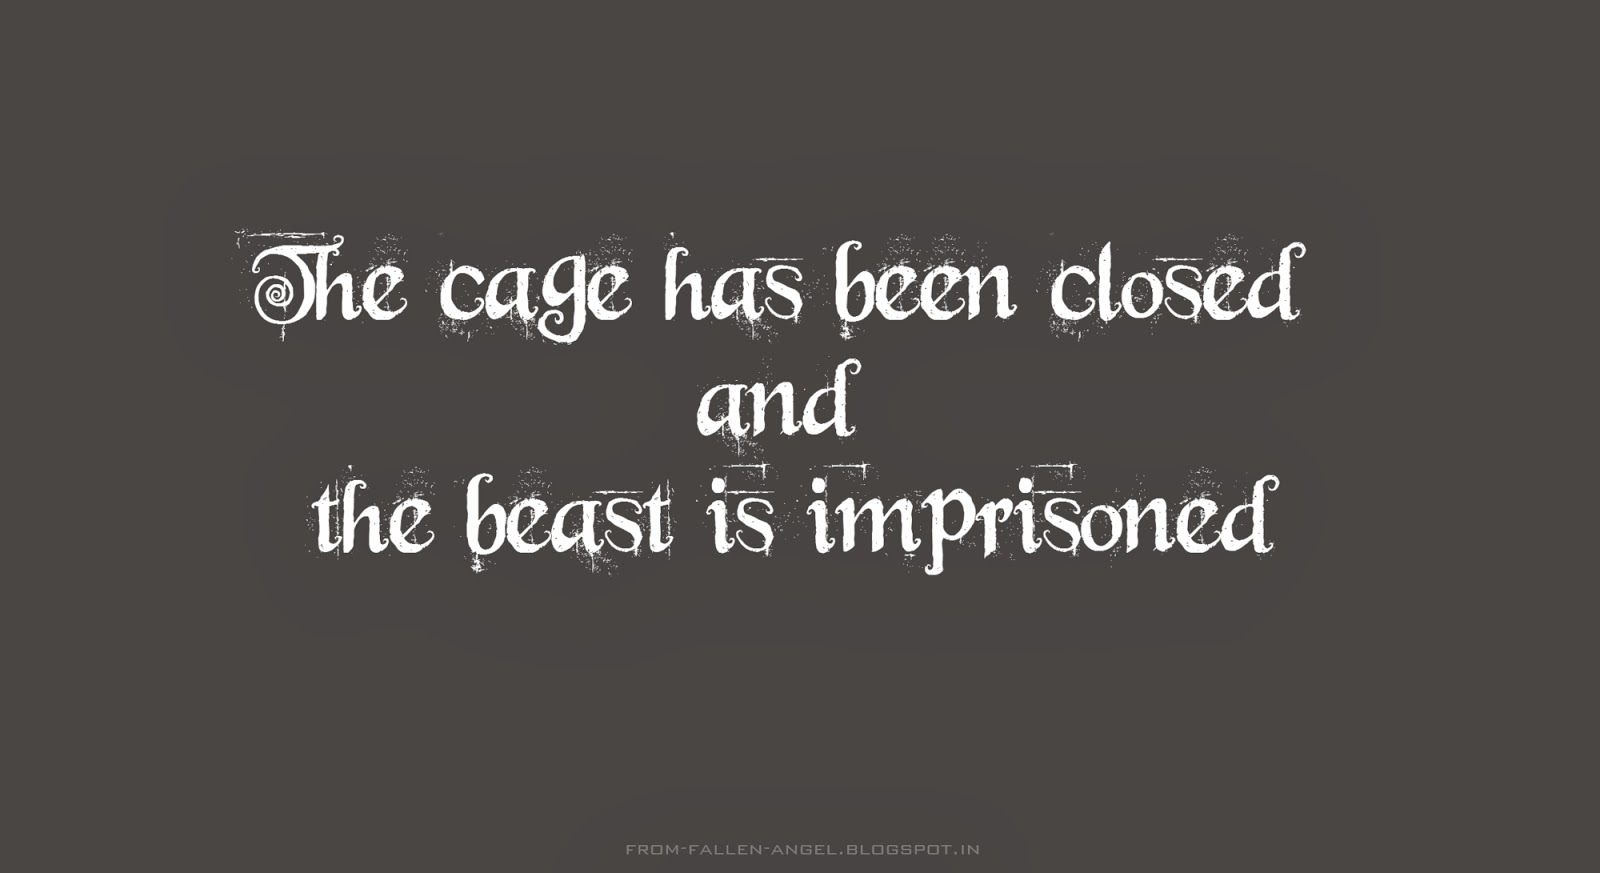 The cage has been closed and the beast is imprisoned.